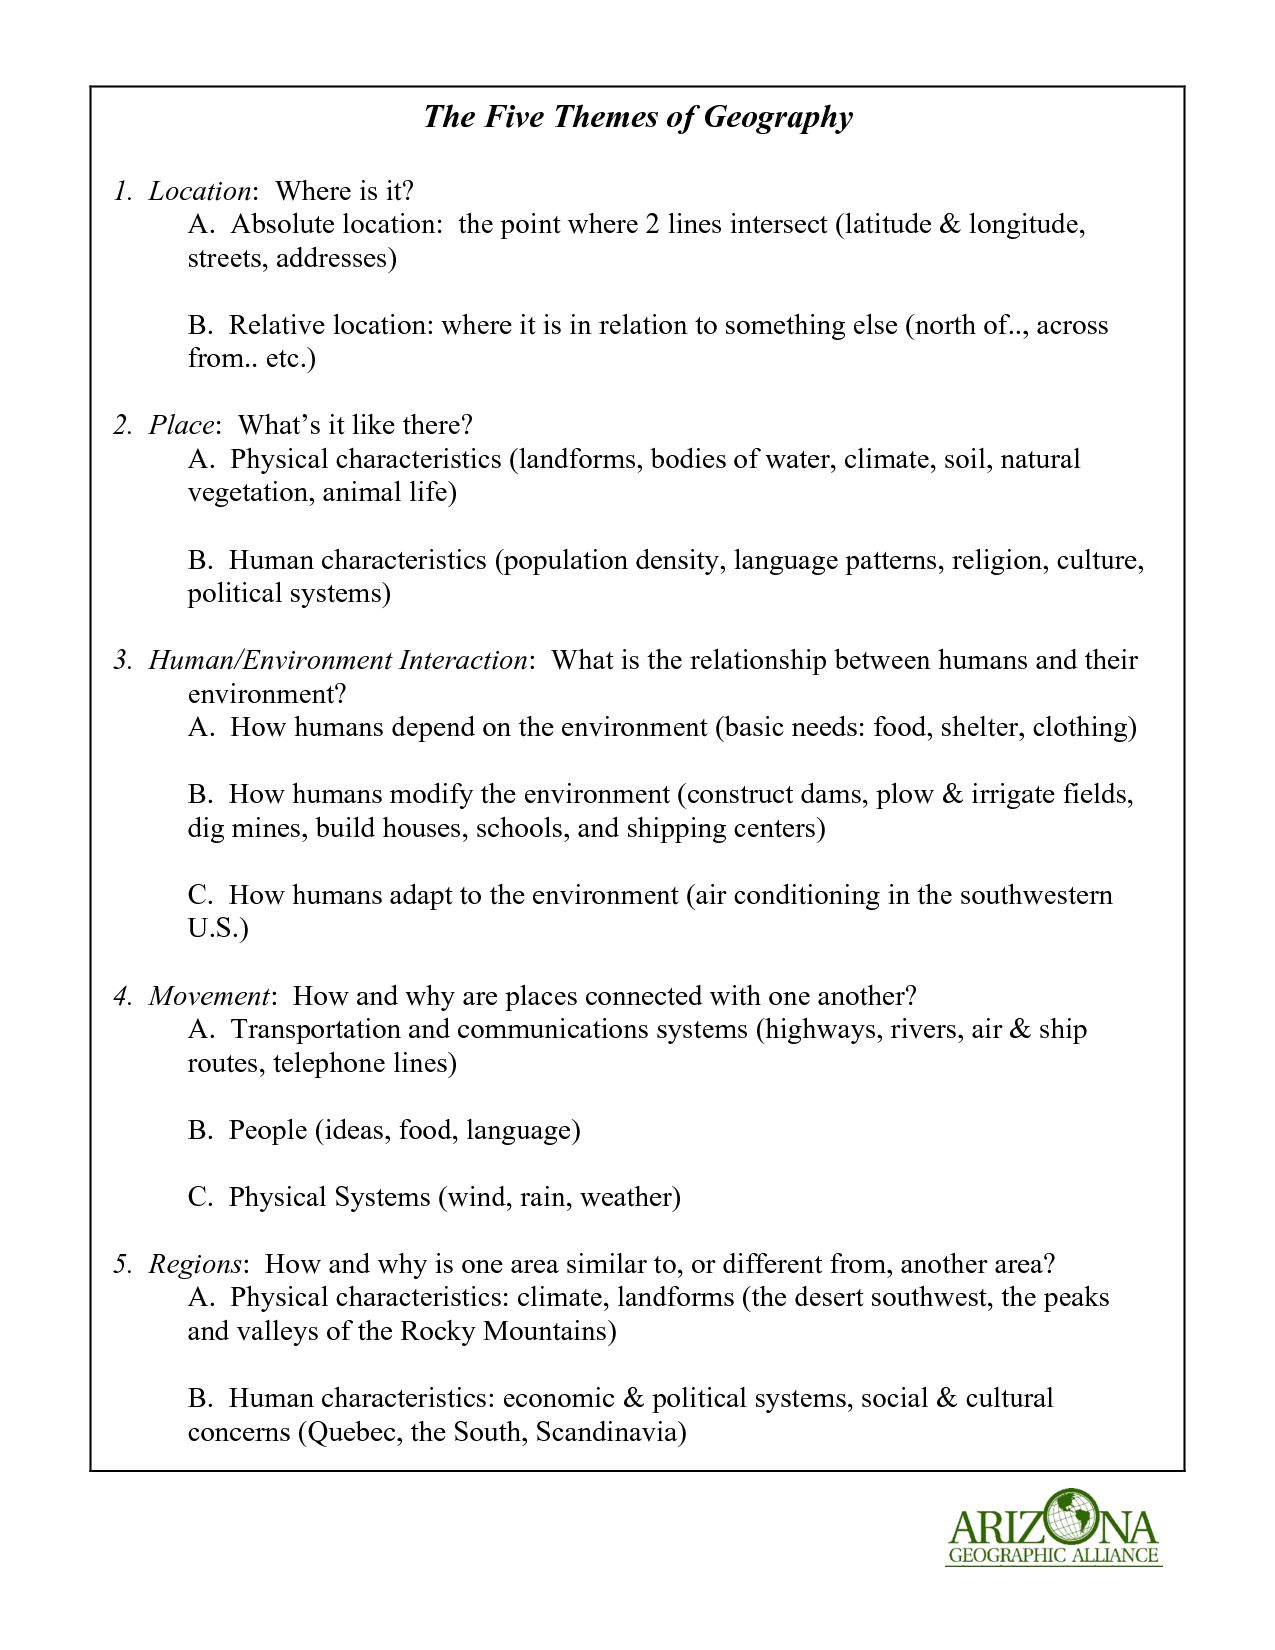 Worksheets 5 Themes Of Geography Worksheets 5 themes of geography printable 18 best images five worksheets